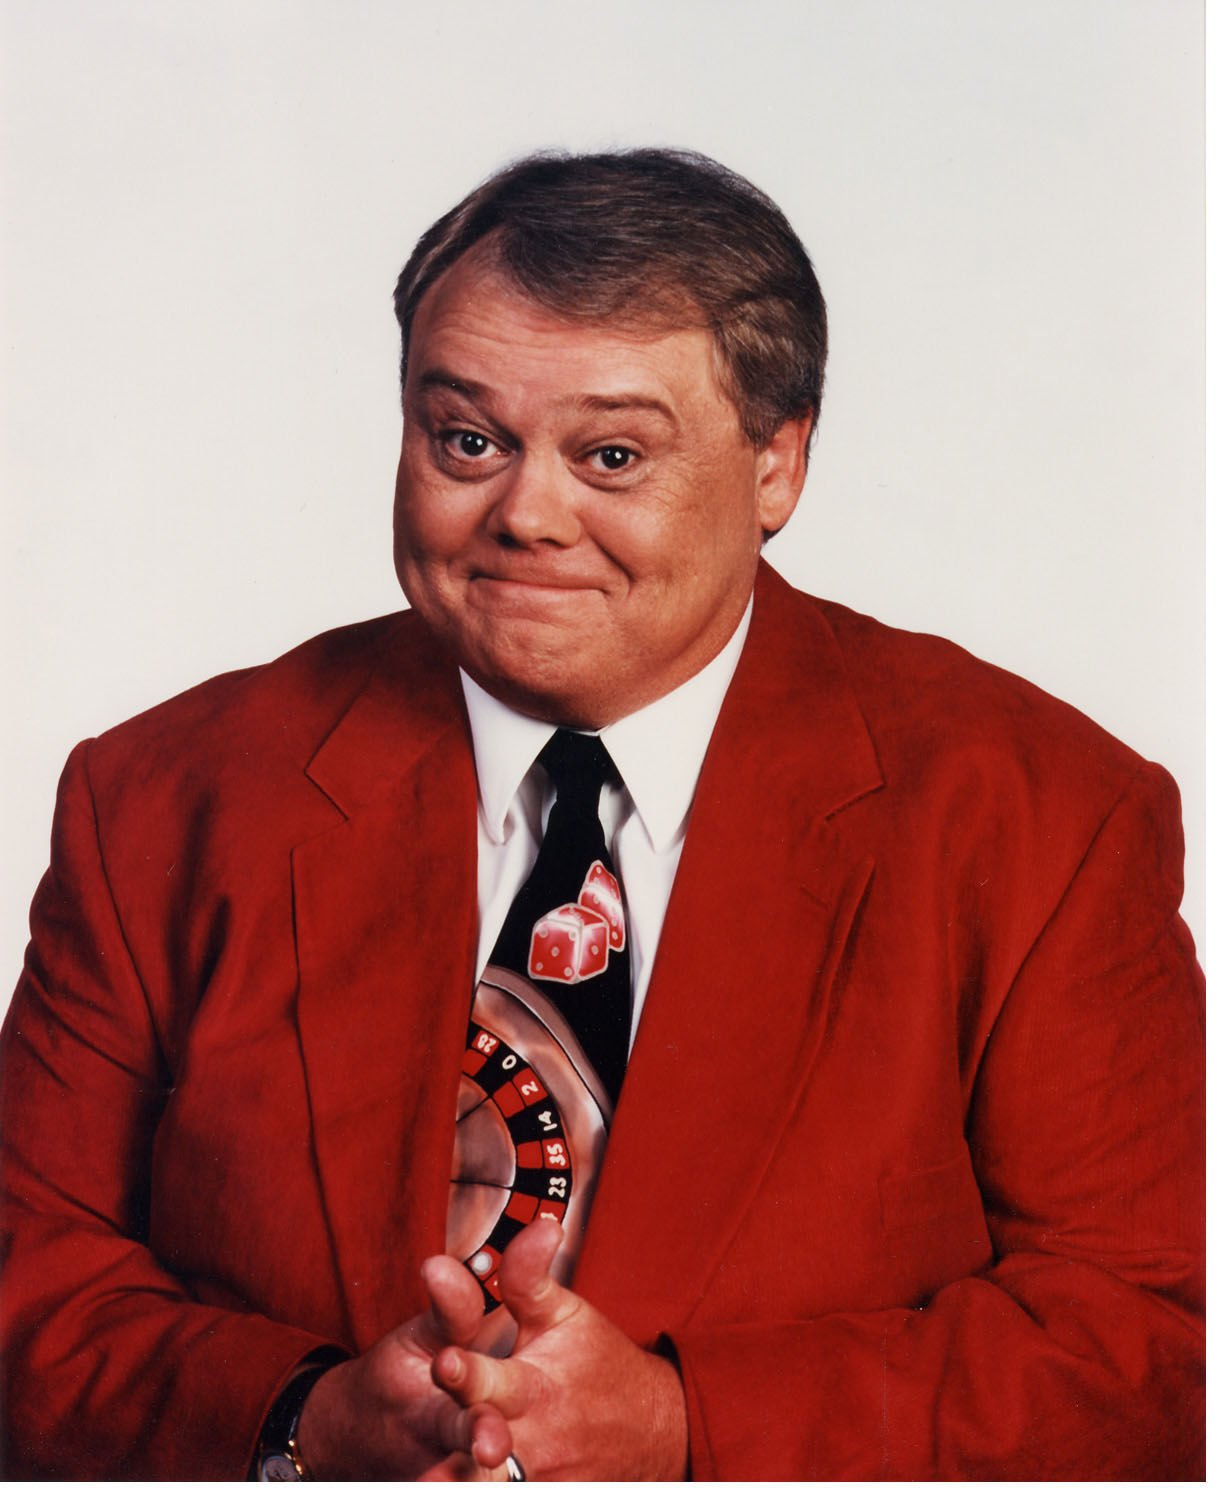 louie anderson wiki